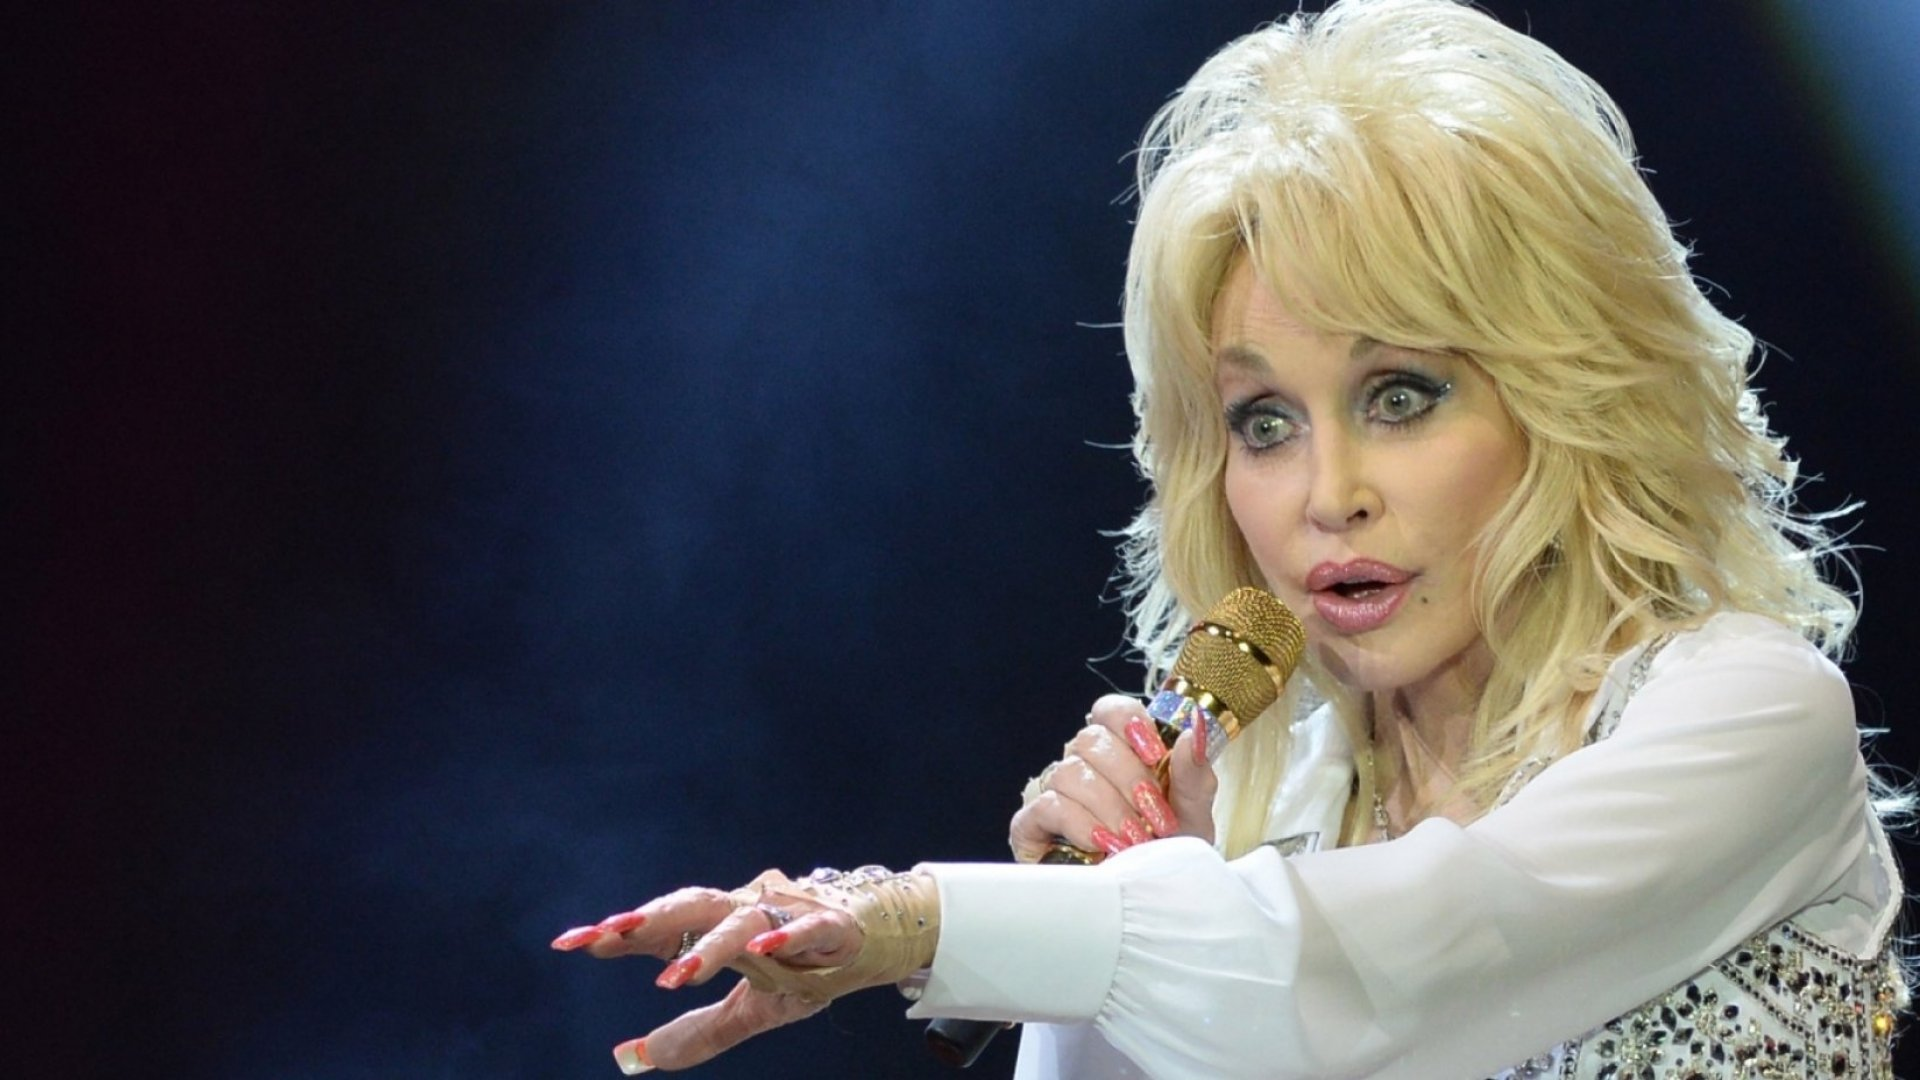 Dolly Parton Just Turned 73 and She's Not Slowing Down. Here's 1 Big Lesson You Can Learn From Her